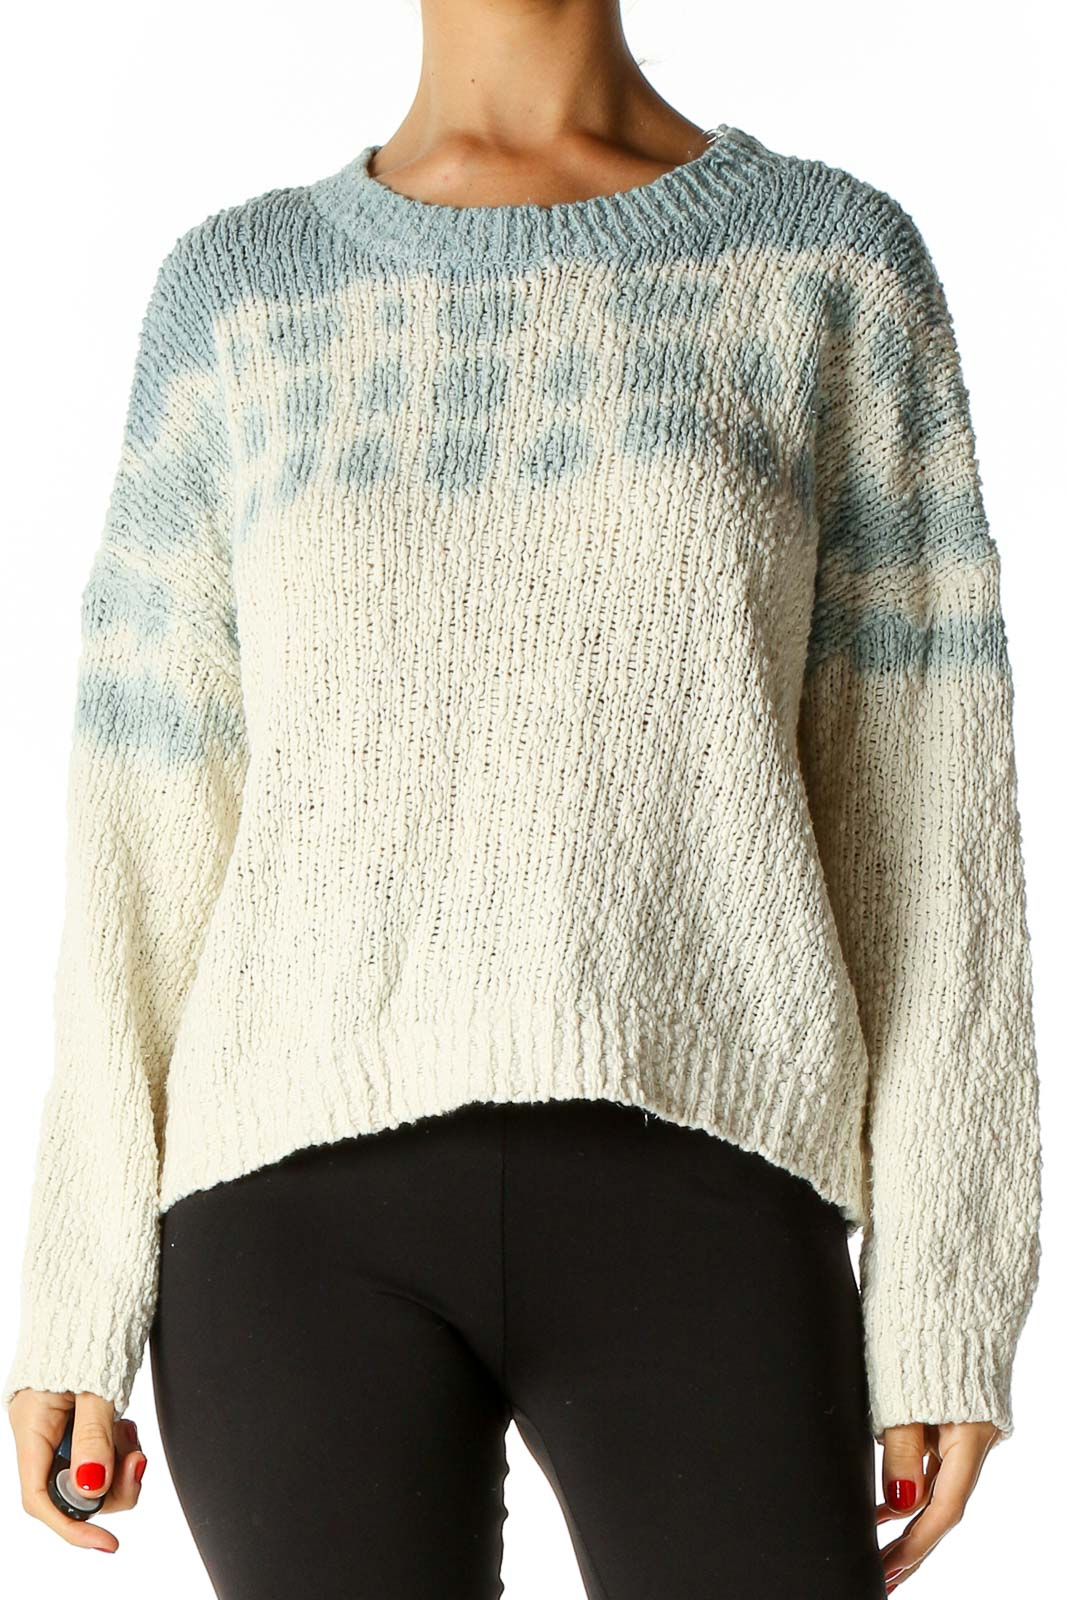 Beige All Day Wear Sweater Front